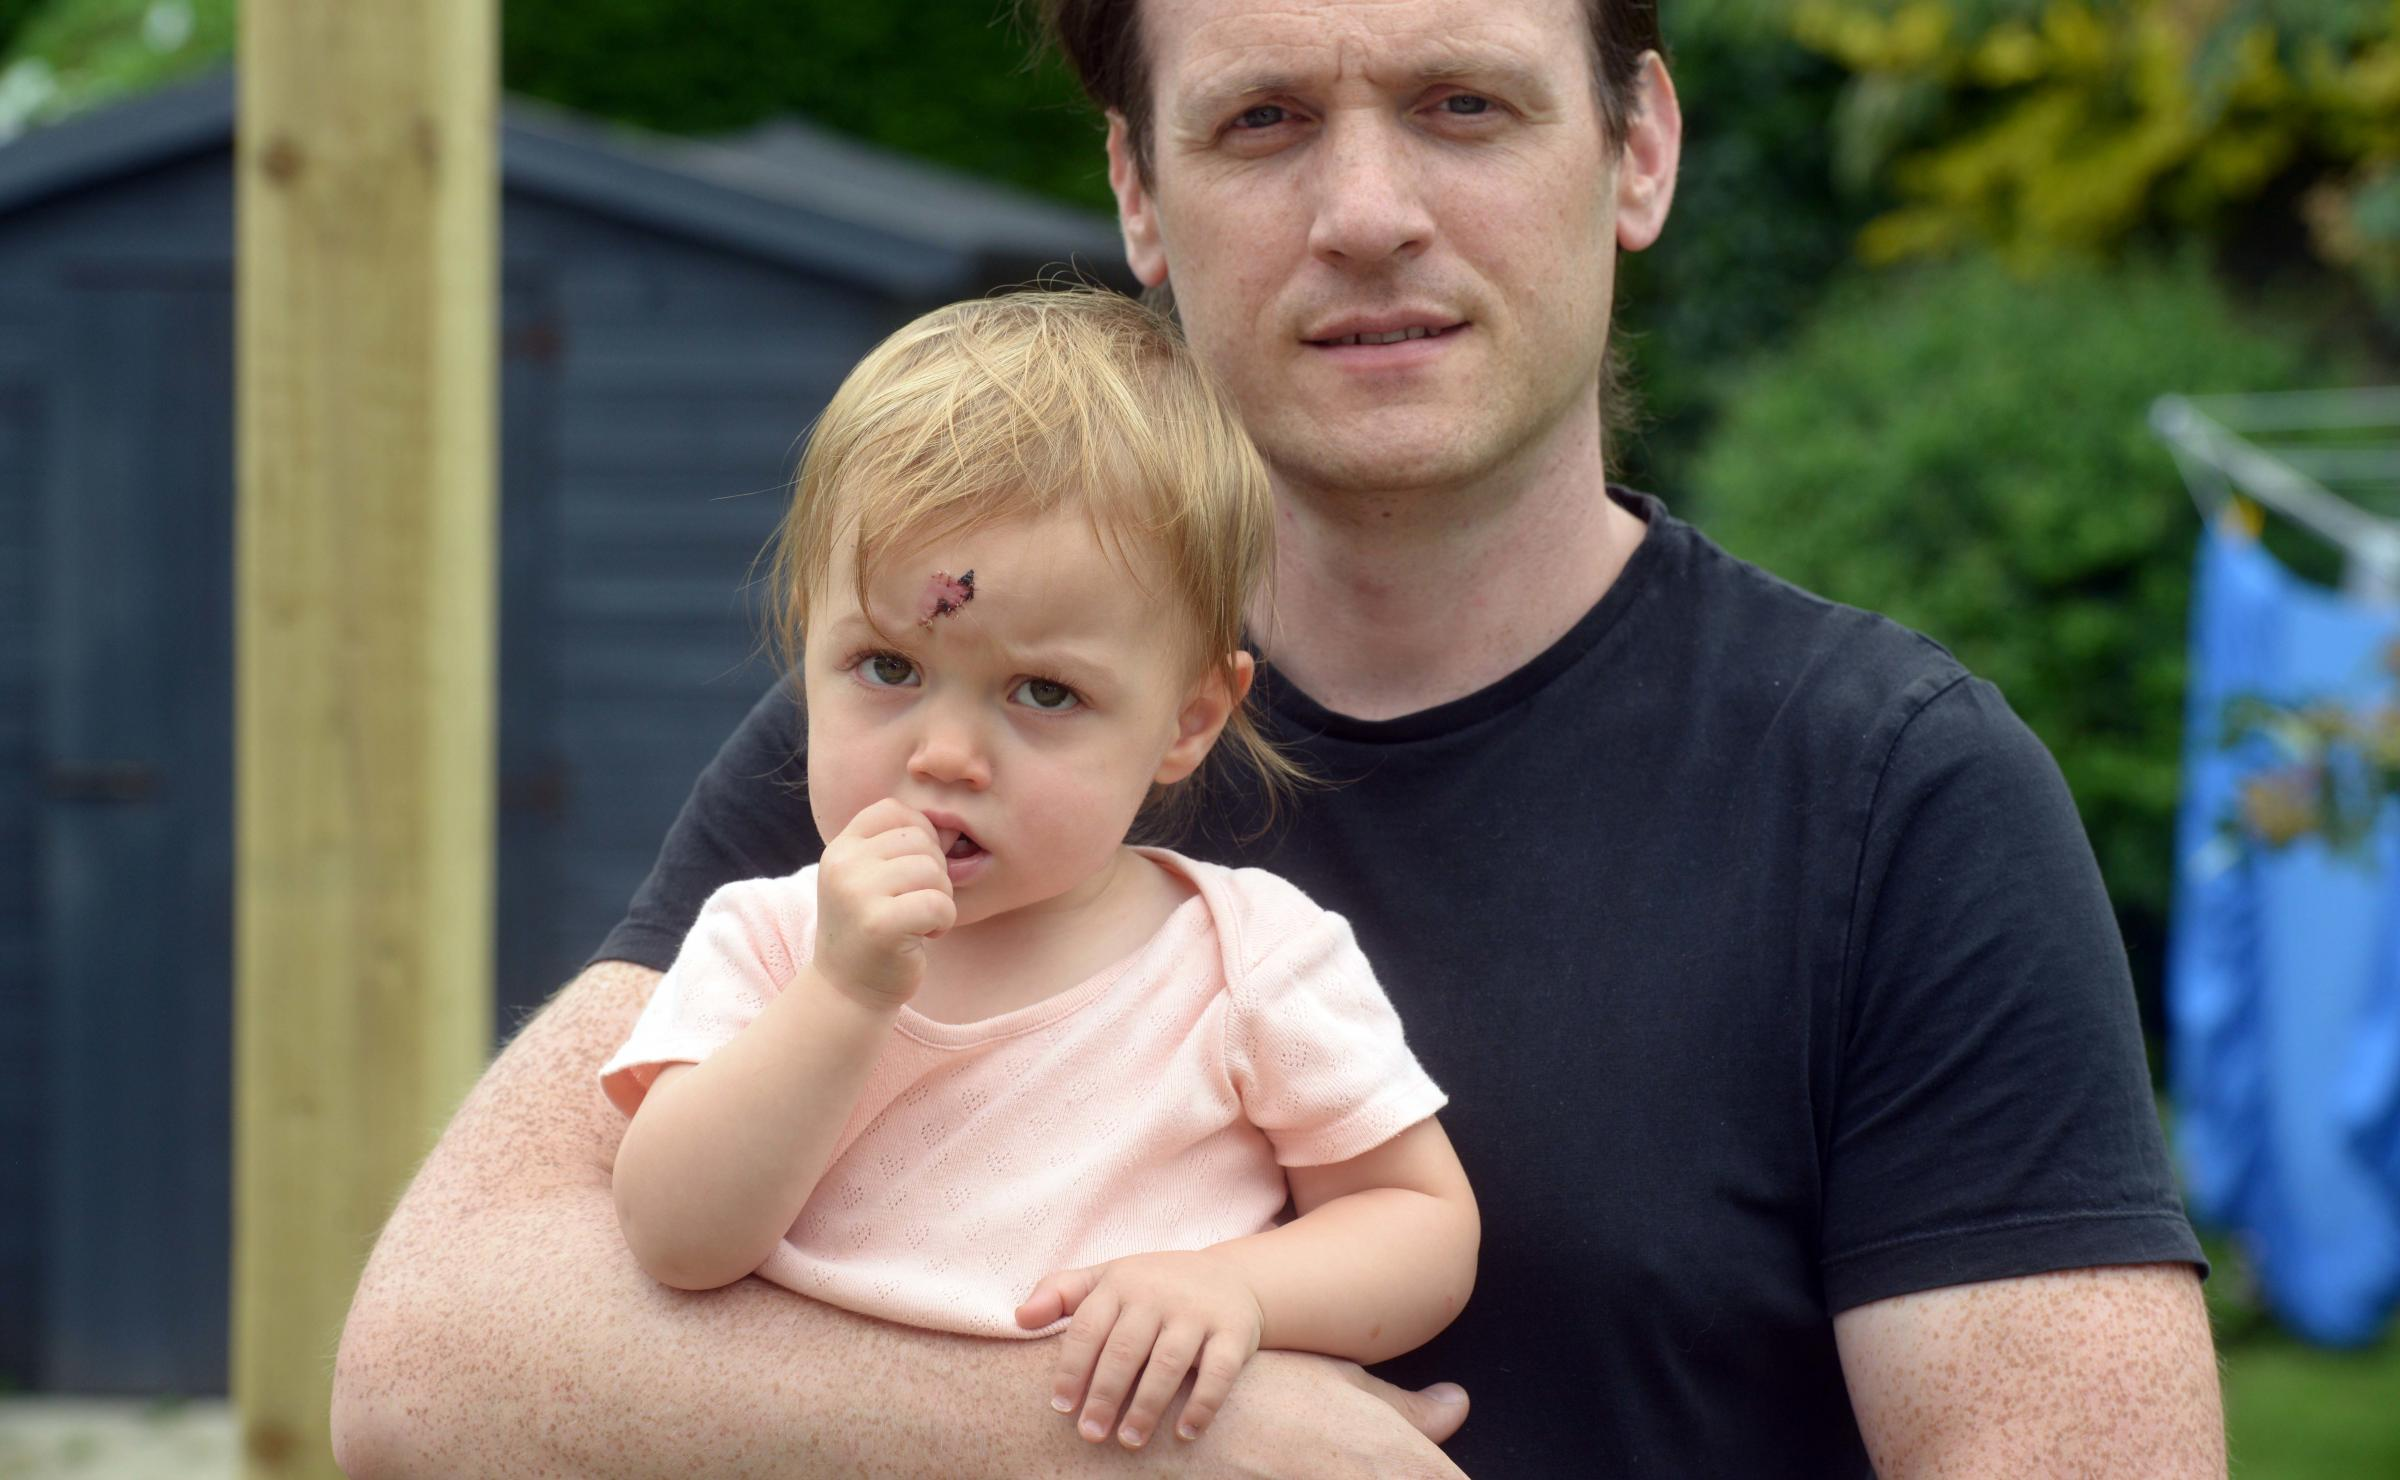 Toddler suffers horrific cut after falling head-first into wood-burning stove